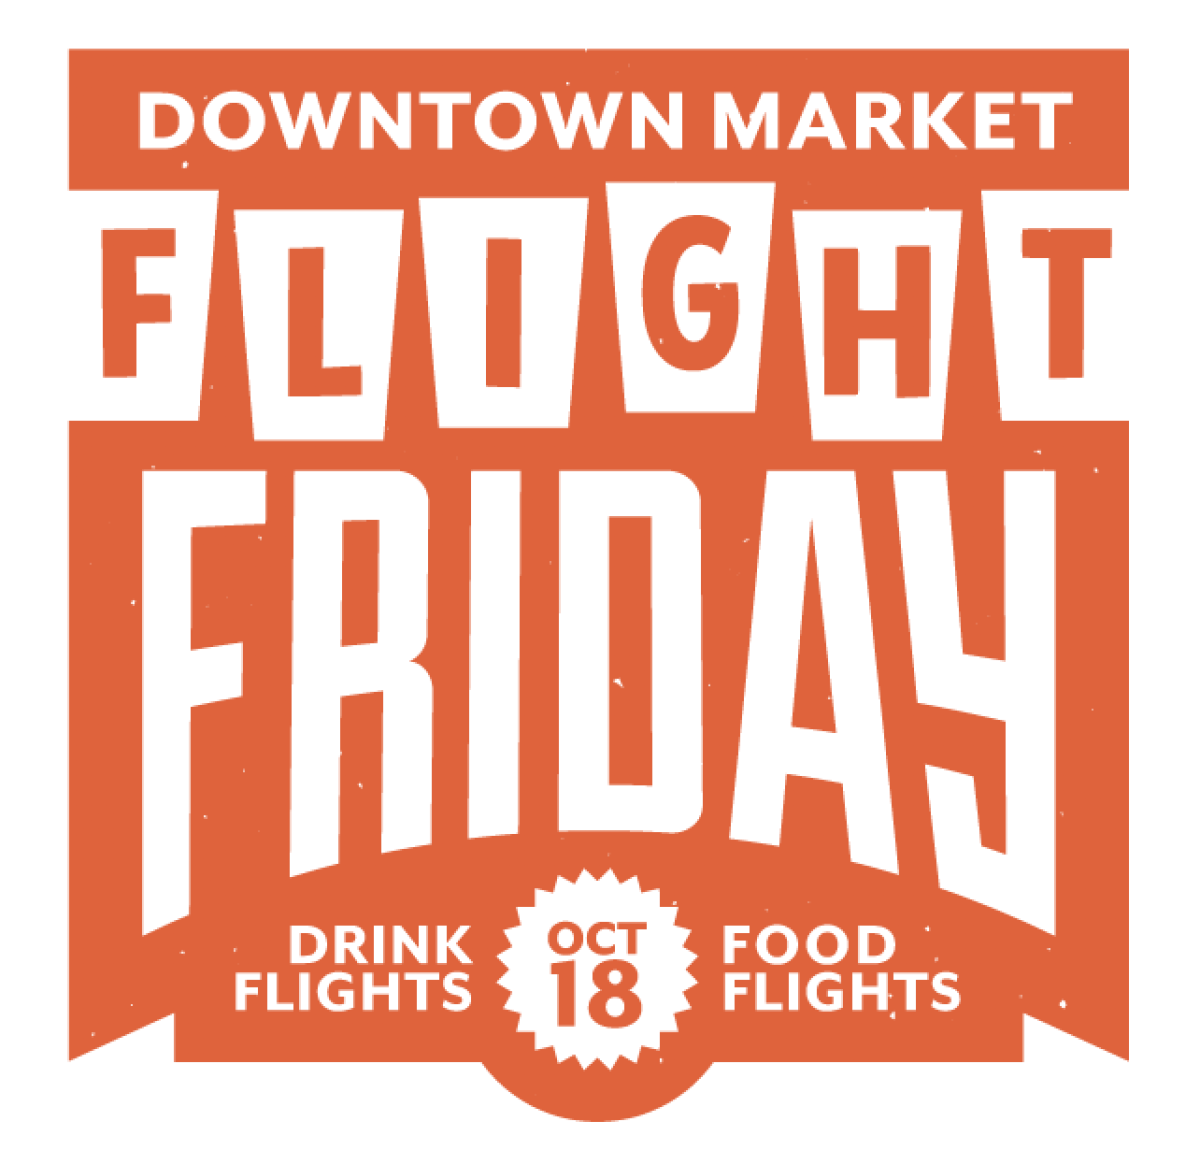 Downtown Market Flight Friday   Collective Community Event in Grand Rapids, MI